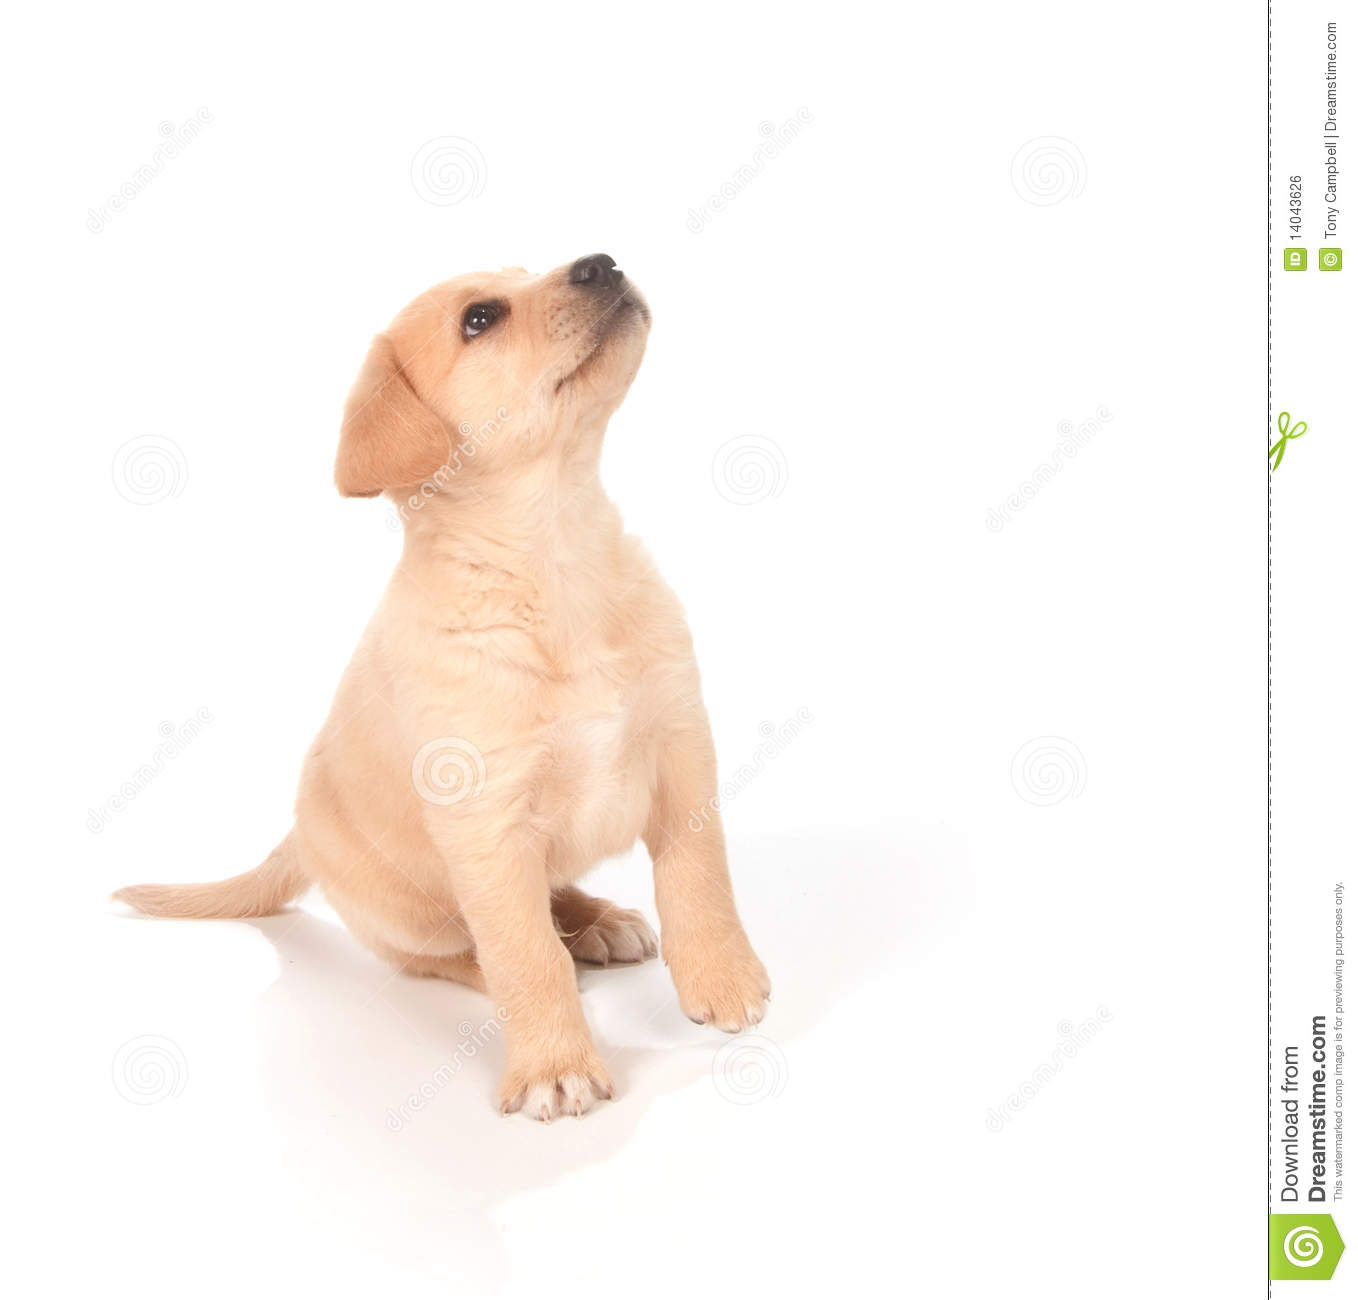 Puppy Looking Up Stock Photo Image Of Animal Cute Adorable 14043626